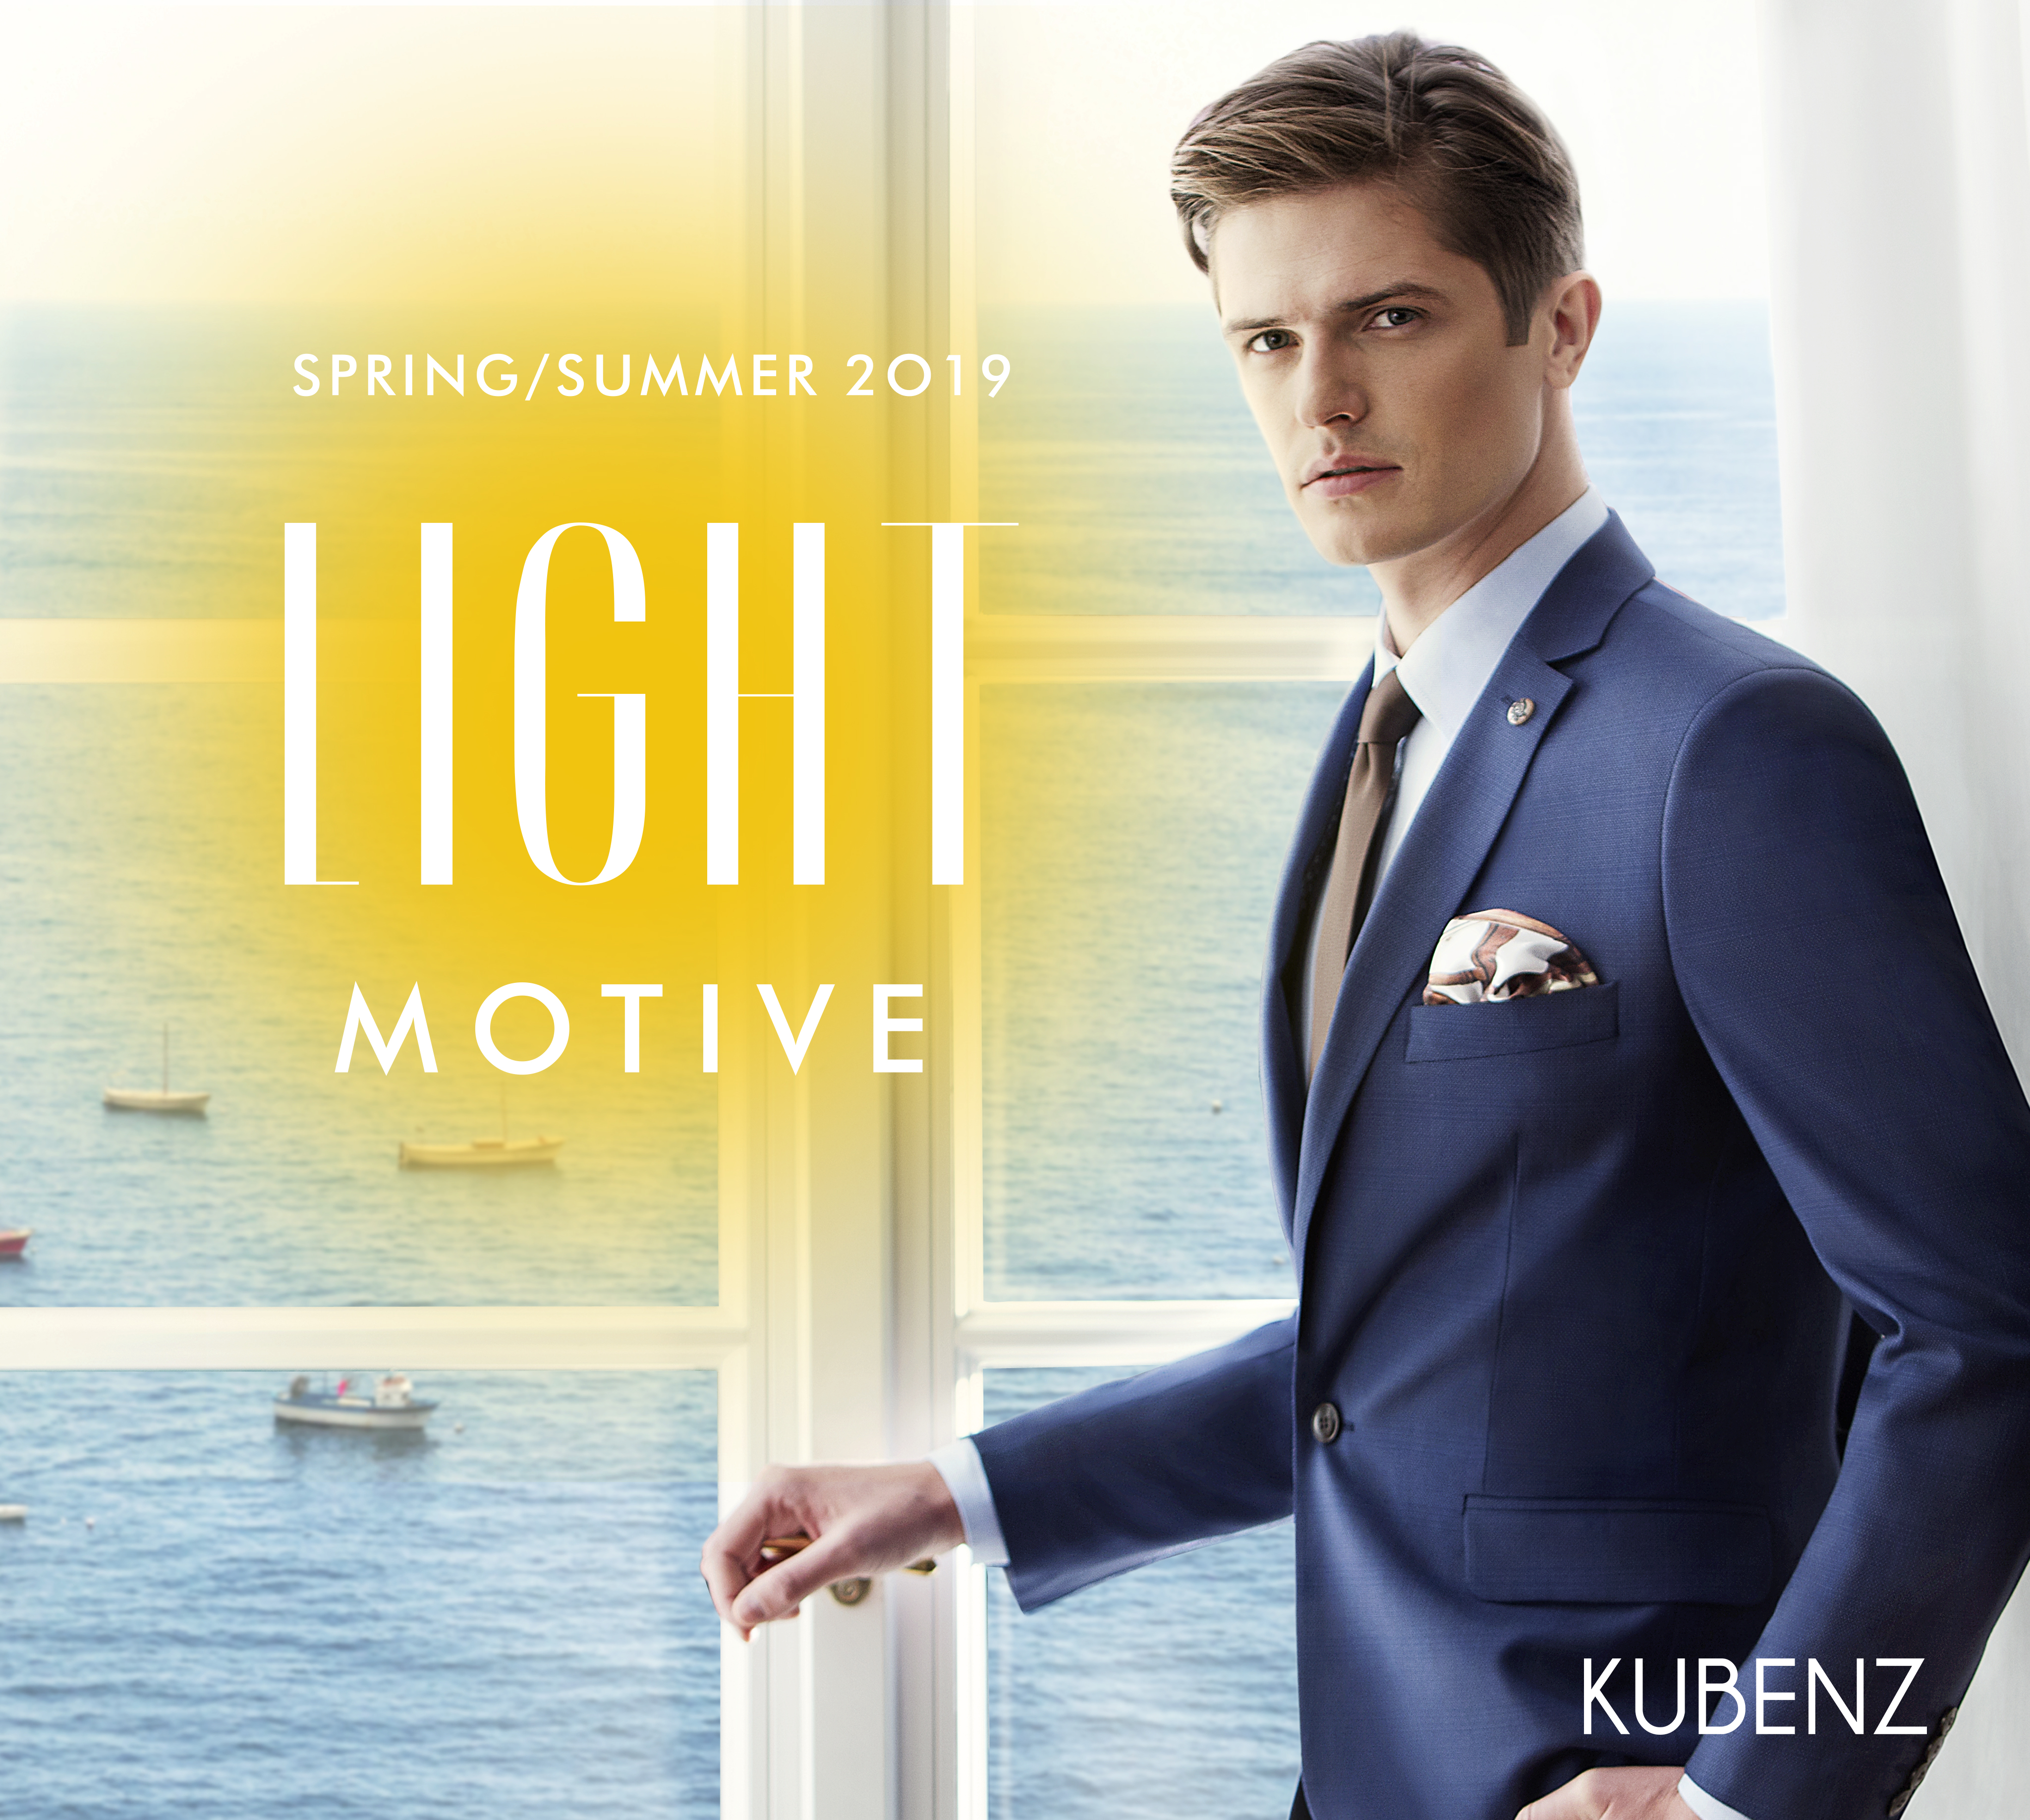 New Collection by Kubenz, now available!